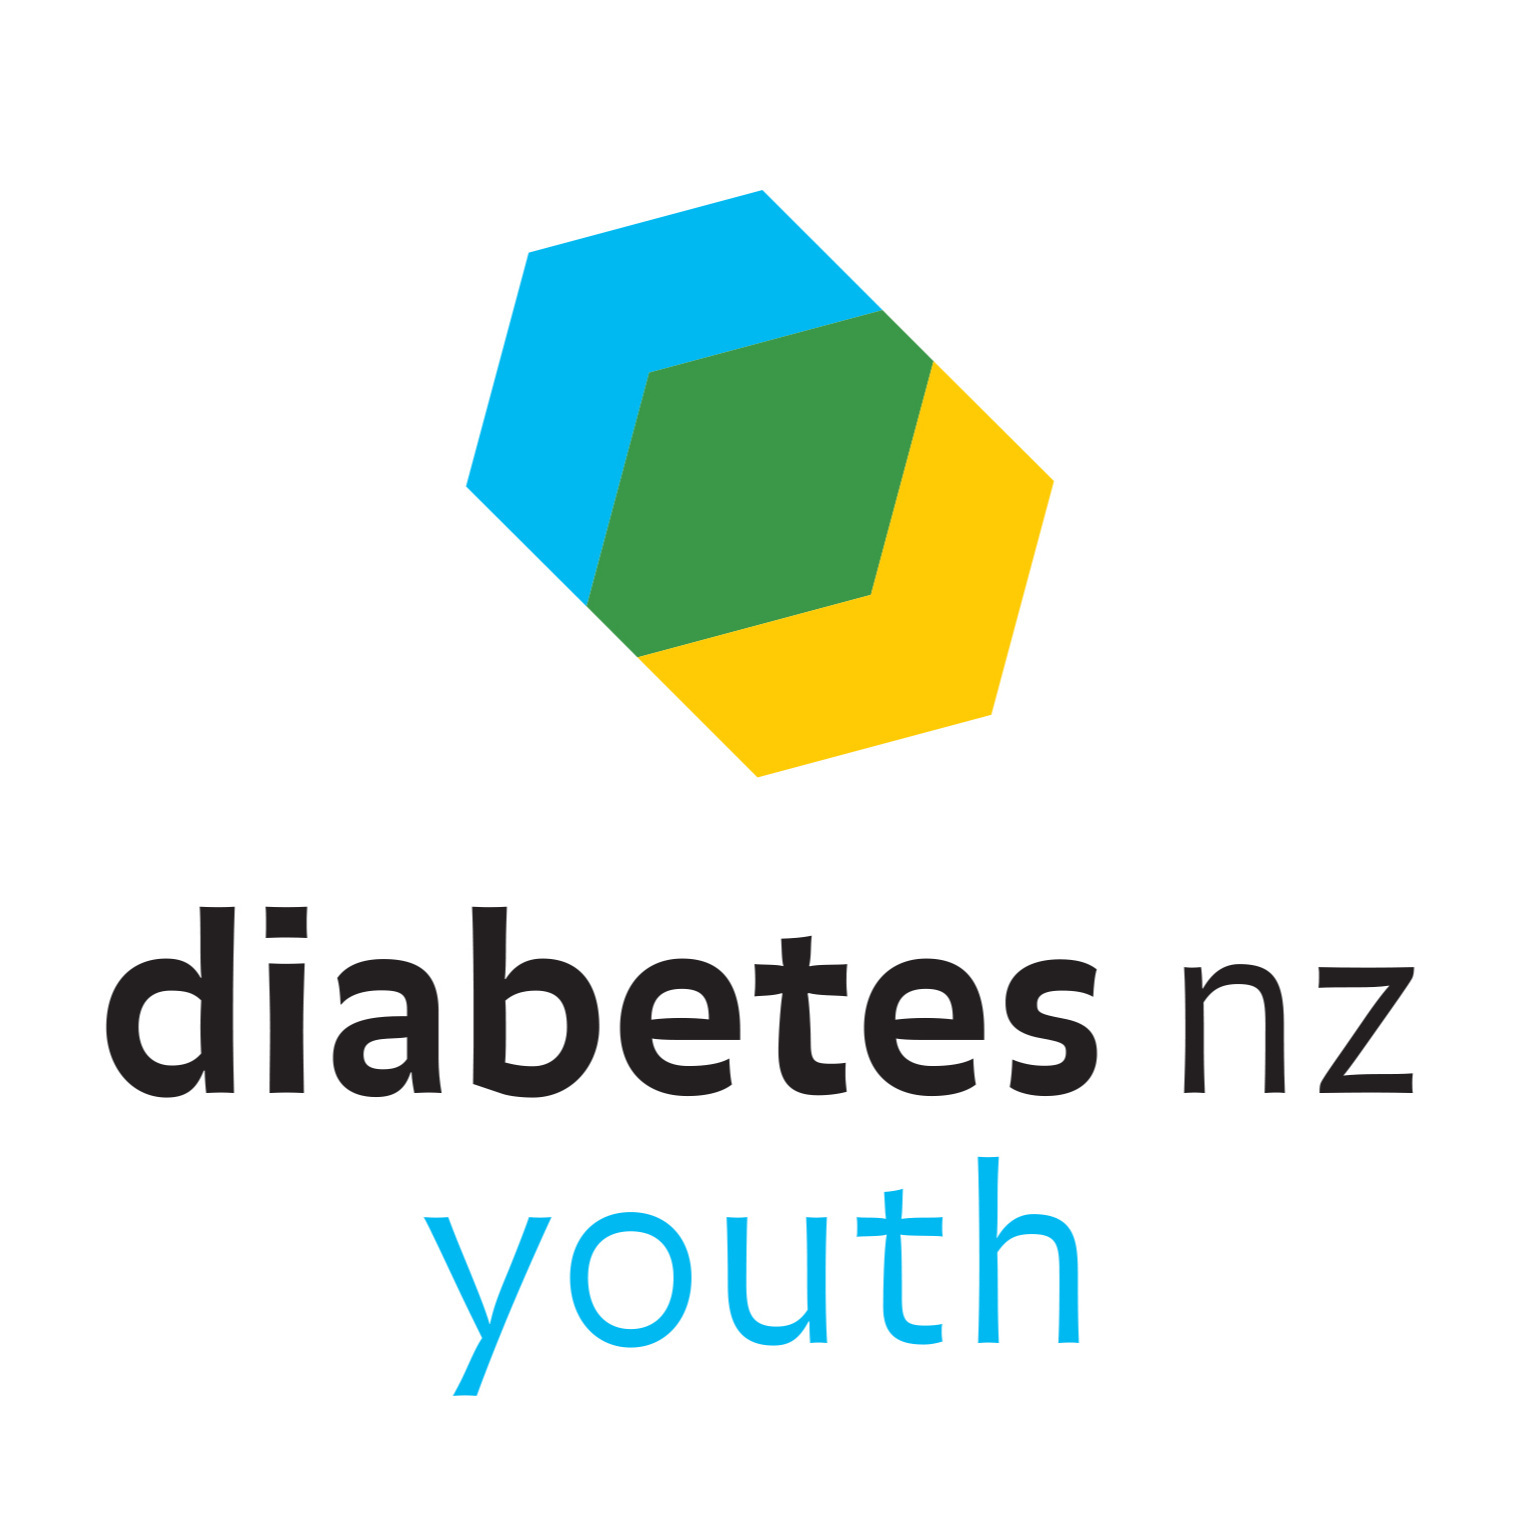 Youth T1 Diabetes Support Groups -